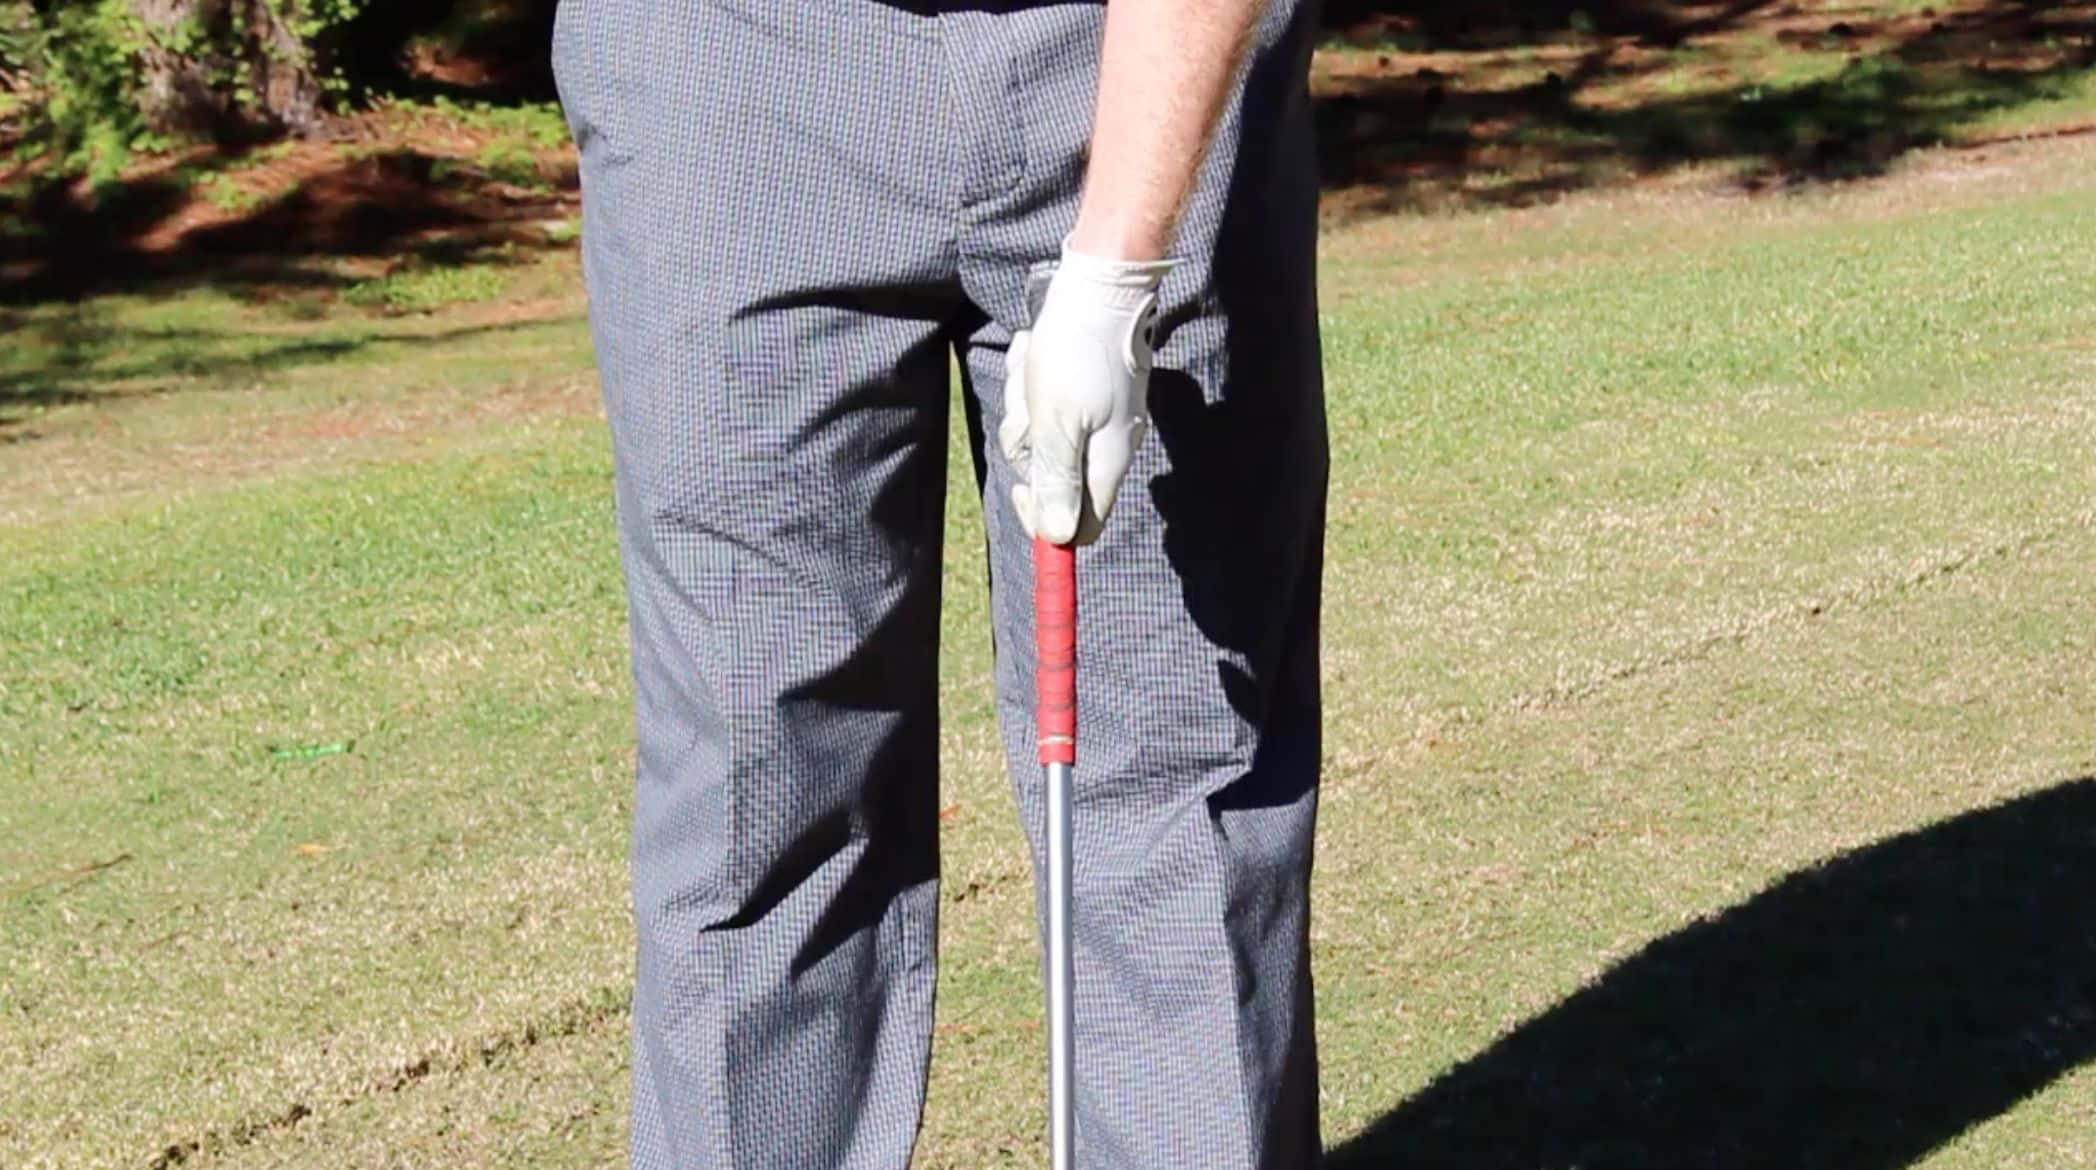 Weak Golf Grip